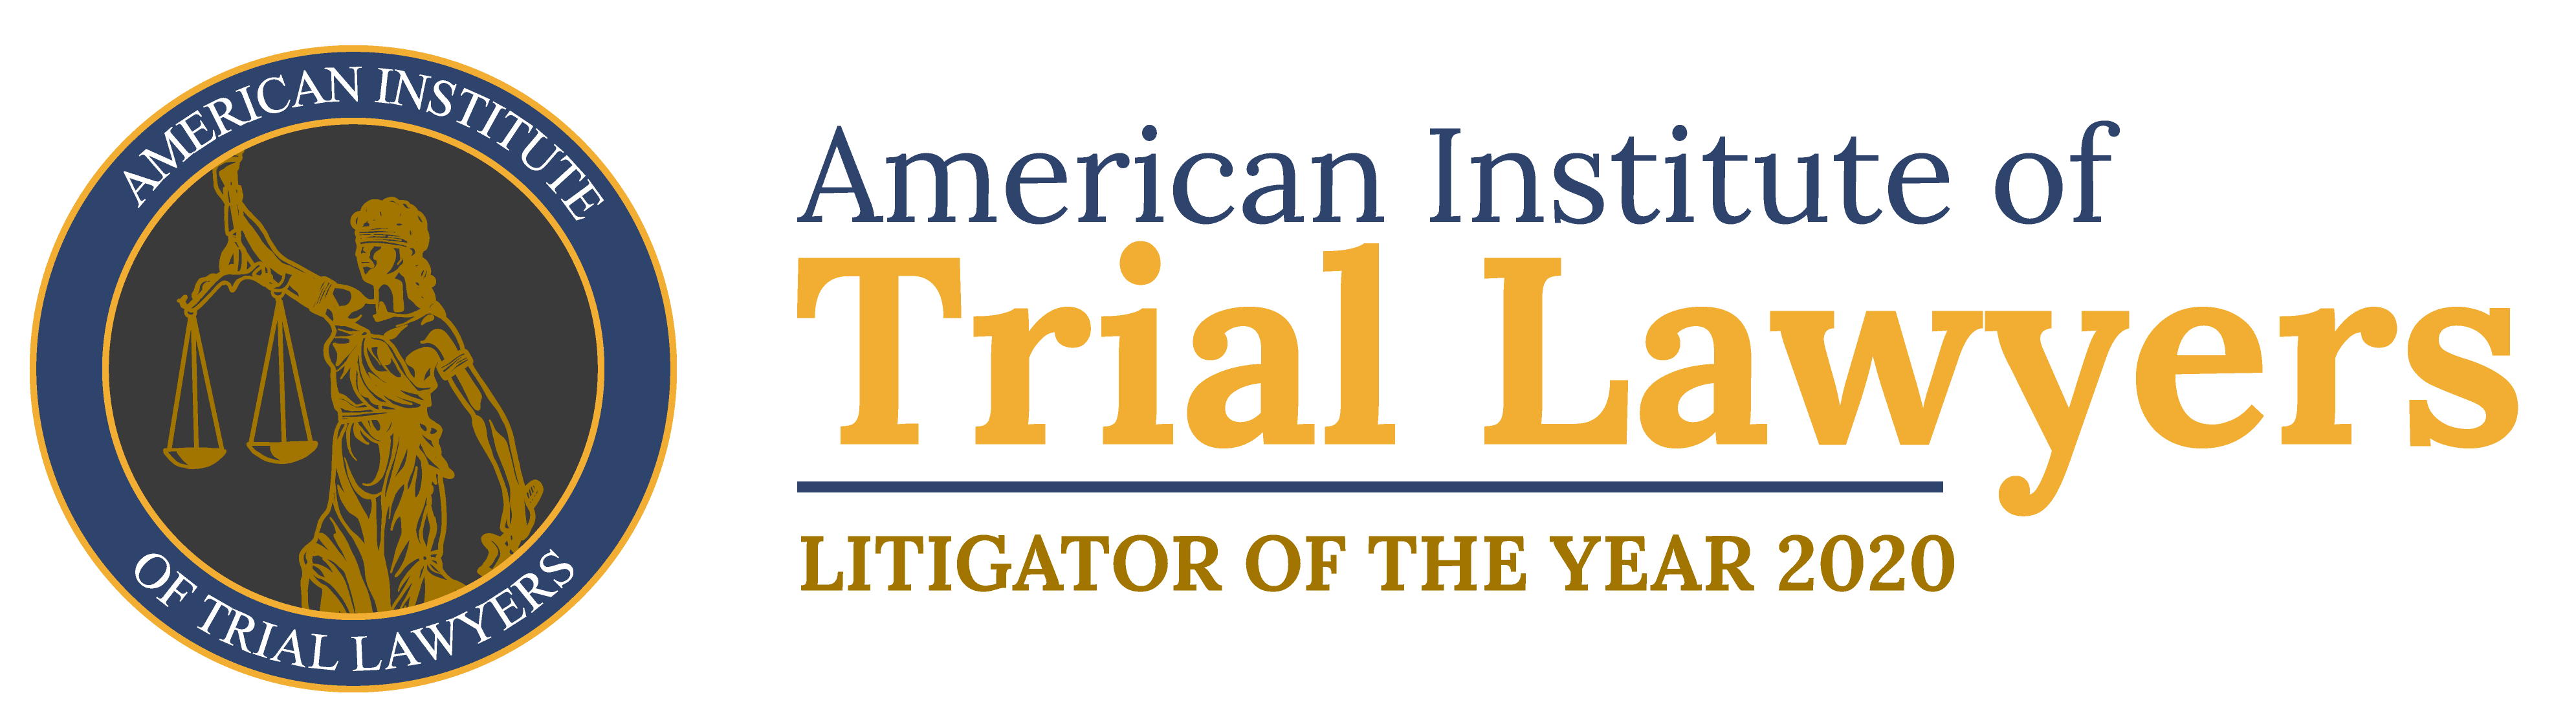 Litigator of the Year 20